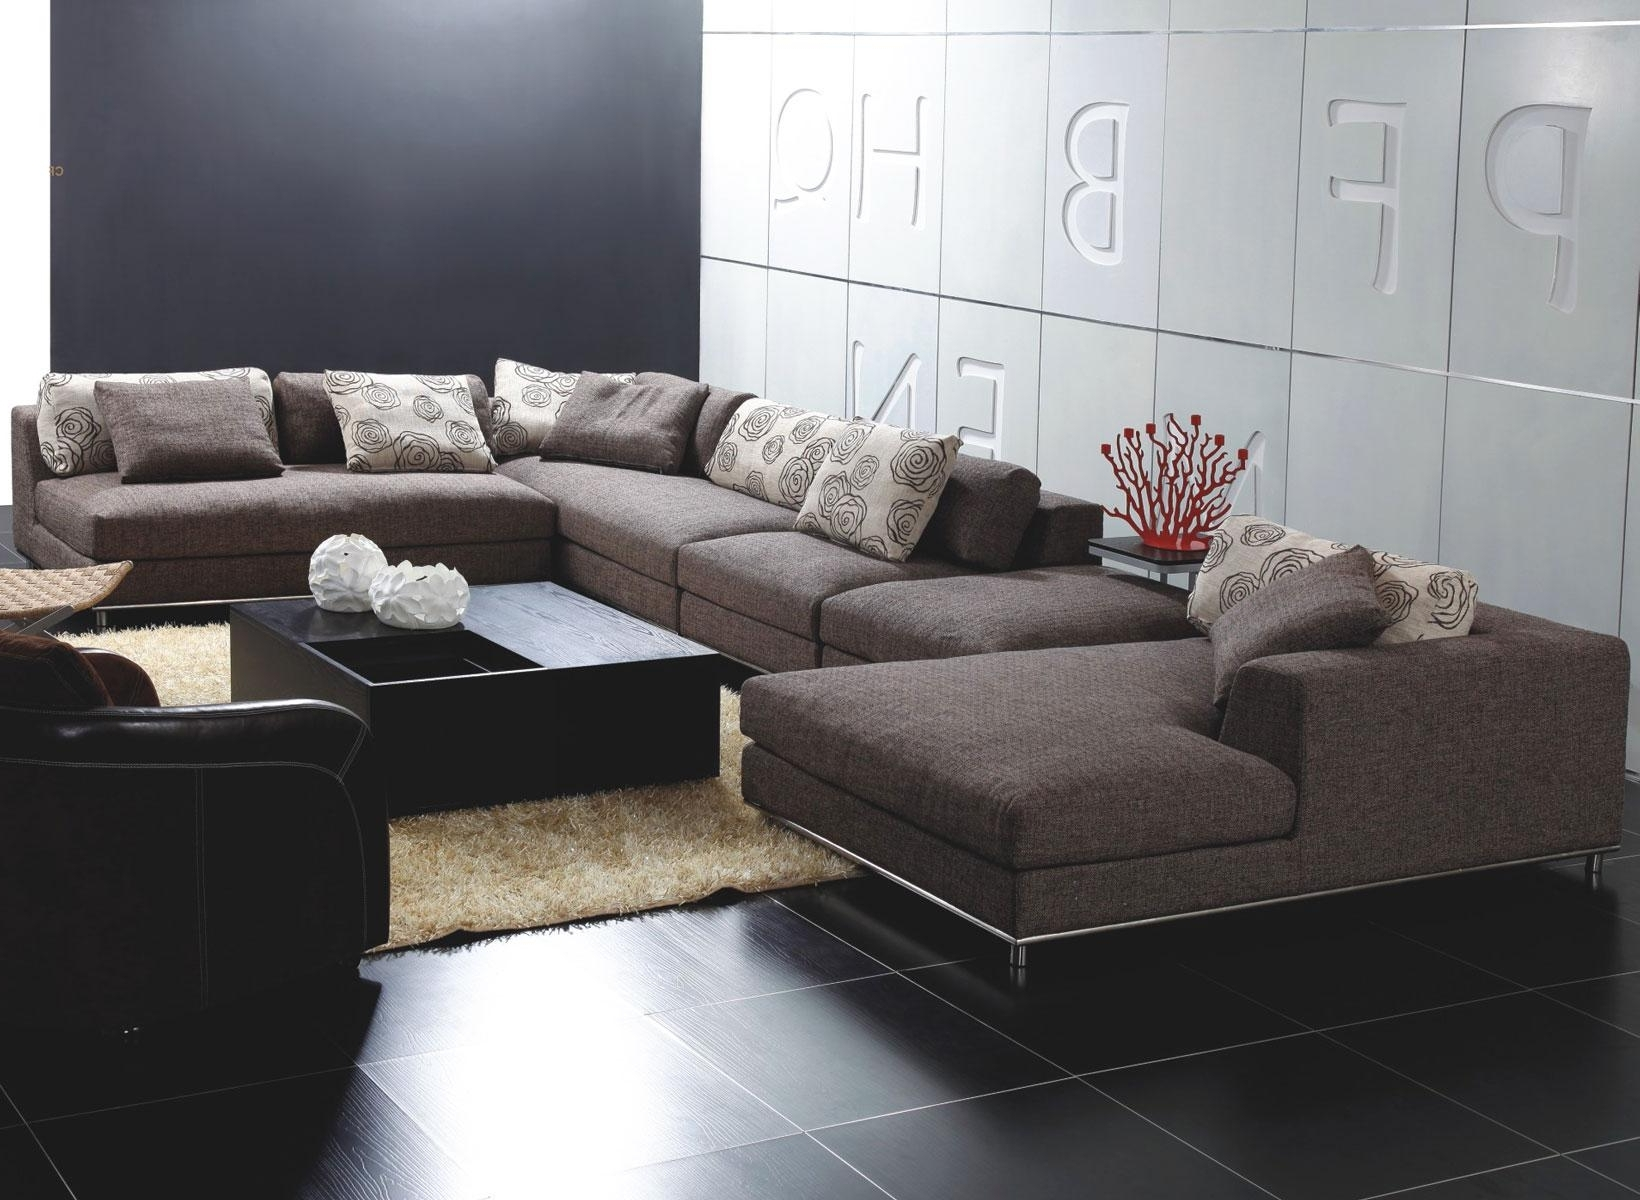 Unique Sectional Sofas regarding Newest Stunning Modern Sectional Sofas With Chaise On Leather Reclining